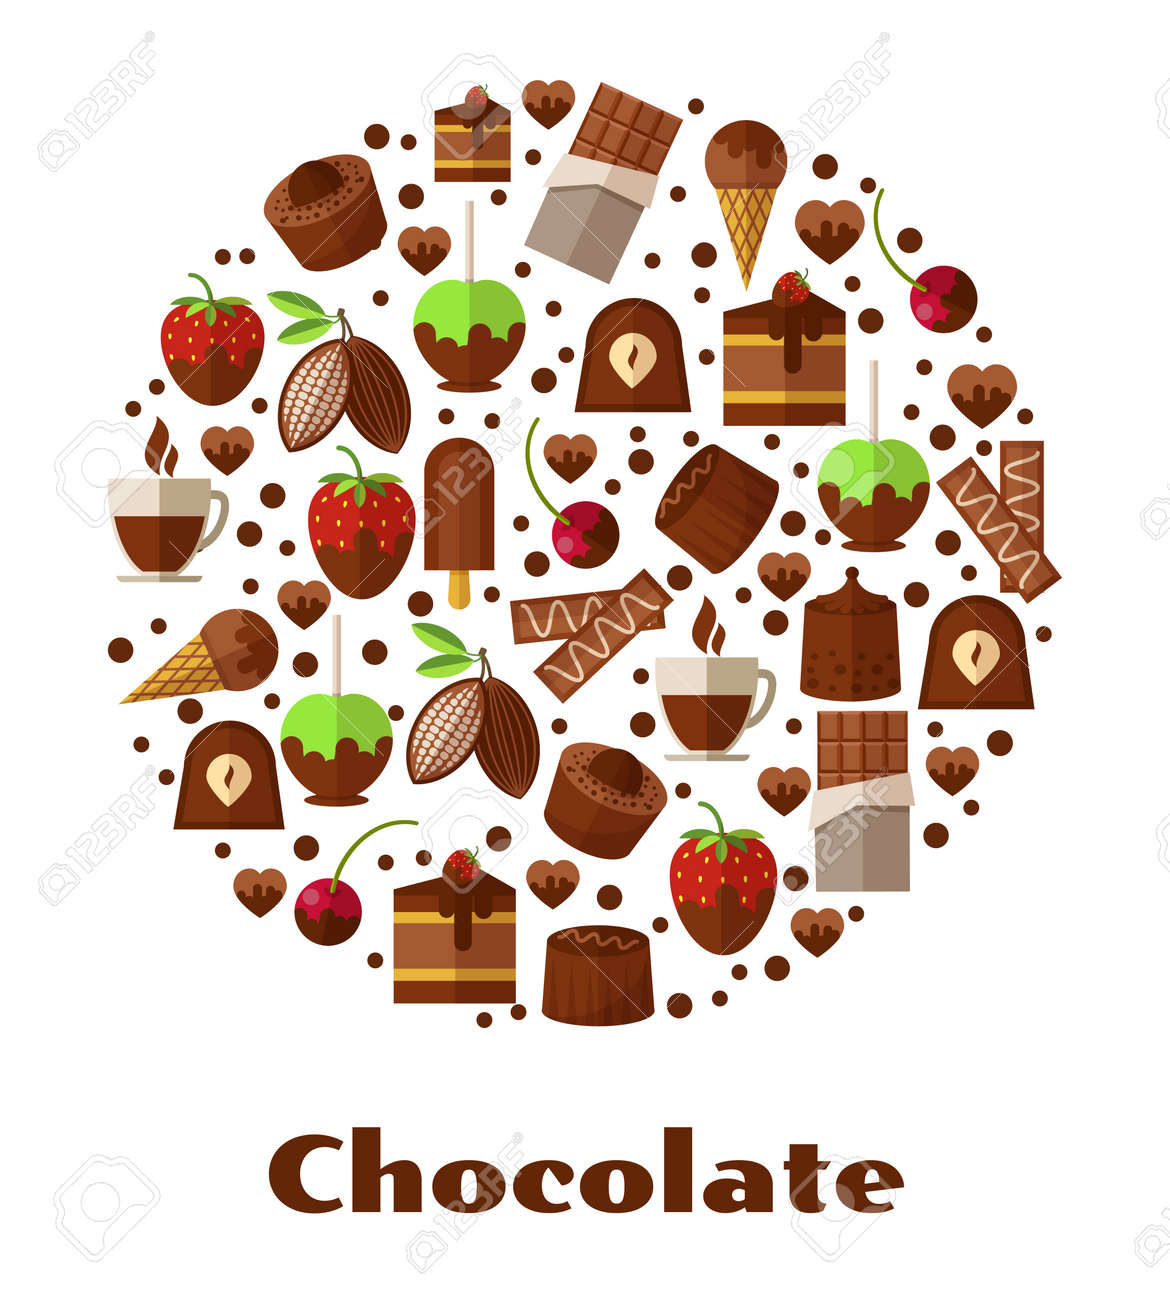 Desserts and delicacies, chocolate food round sign. Design snack product, breakfast biscuit confectionery. Vector illustration - 166892561